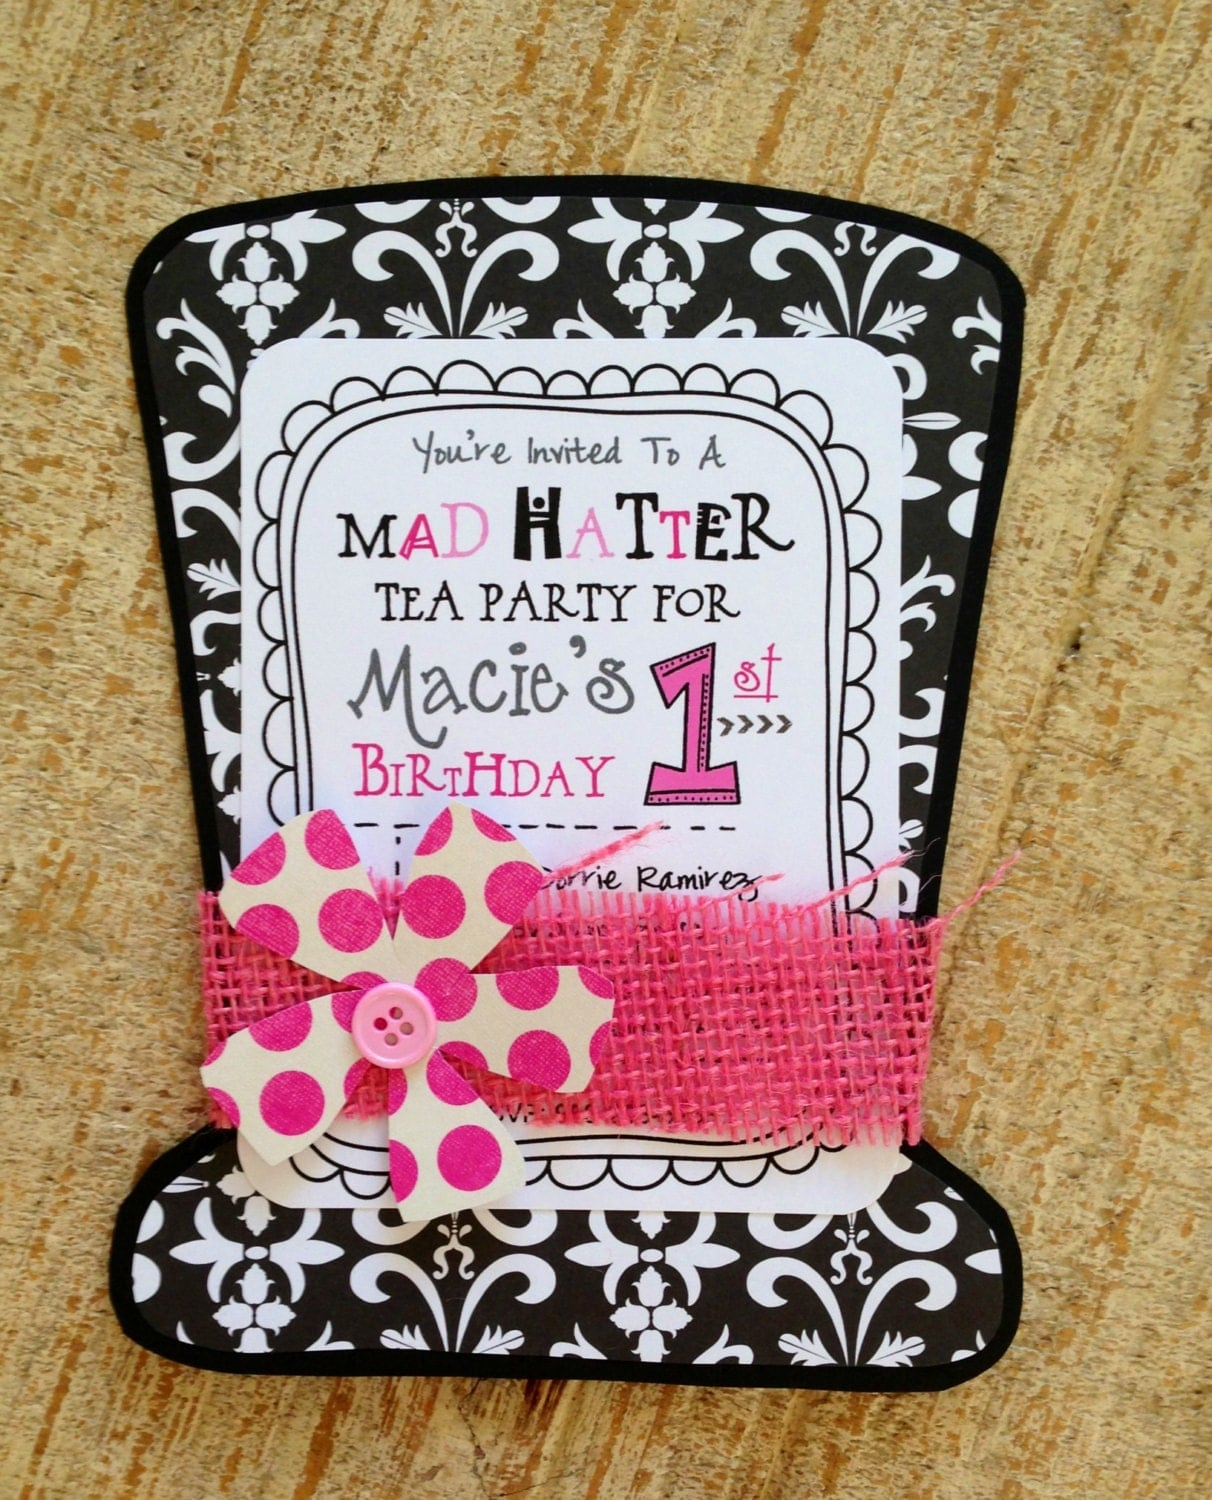 mad hatter tea party invitation by jodigilbert2004 on etsy